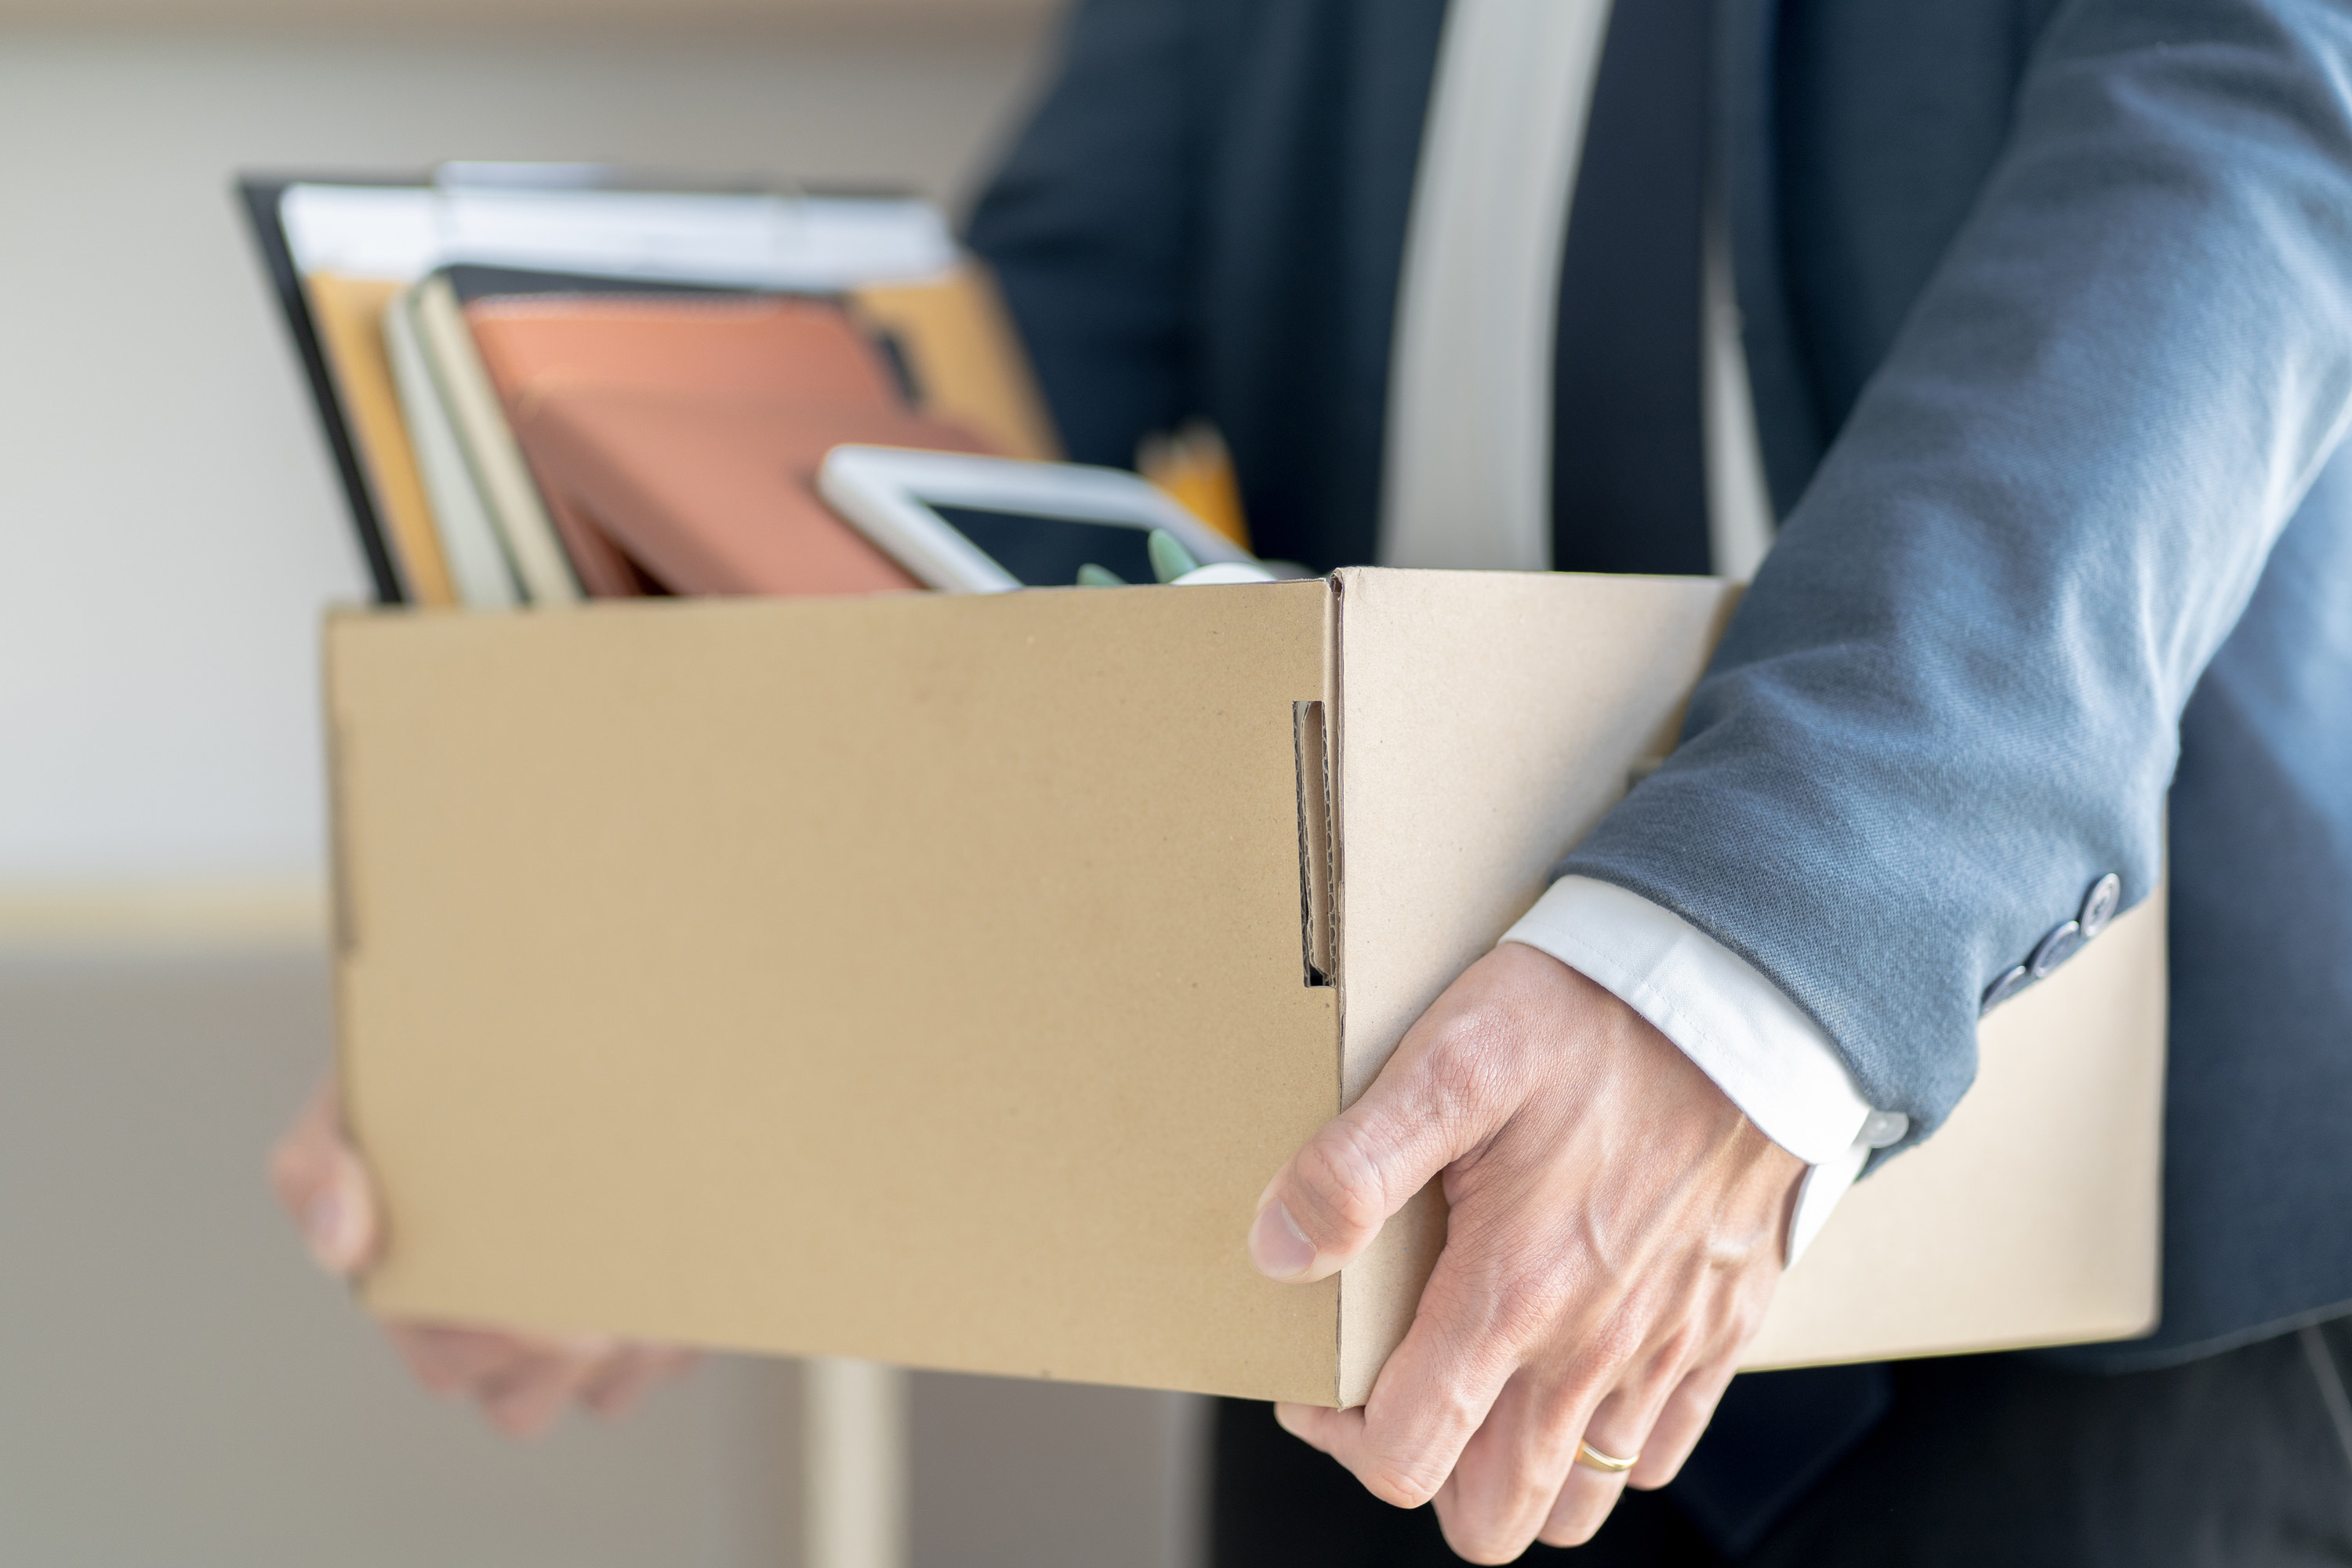 Person carrying a box of their things out of the office after being fired